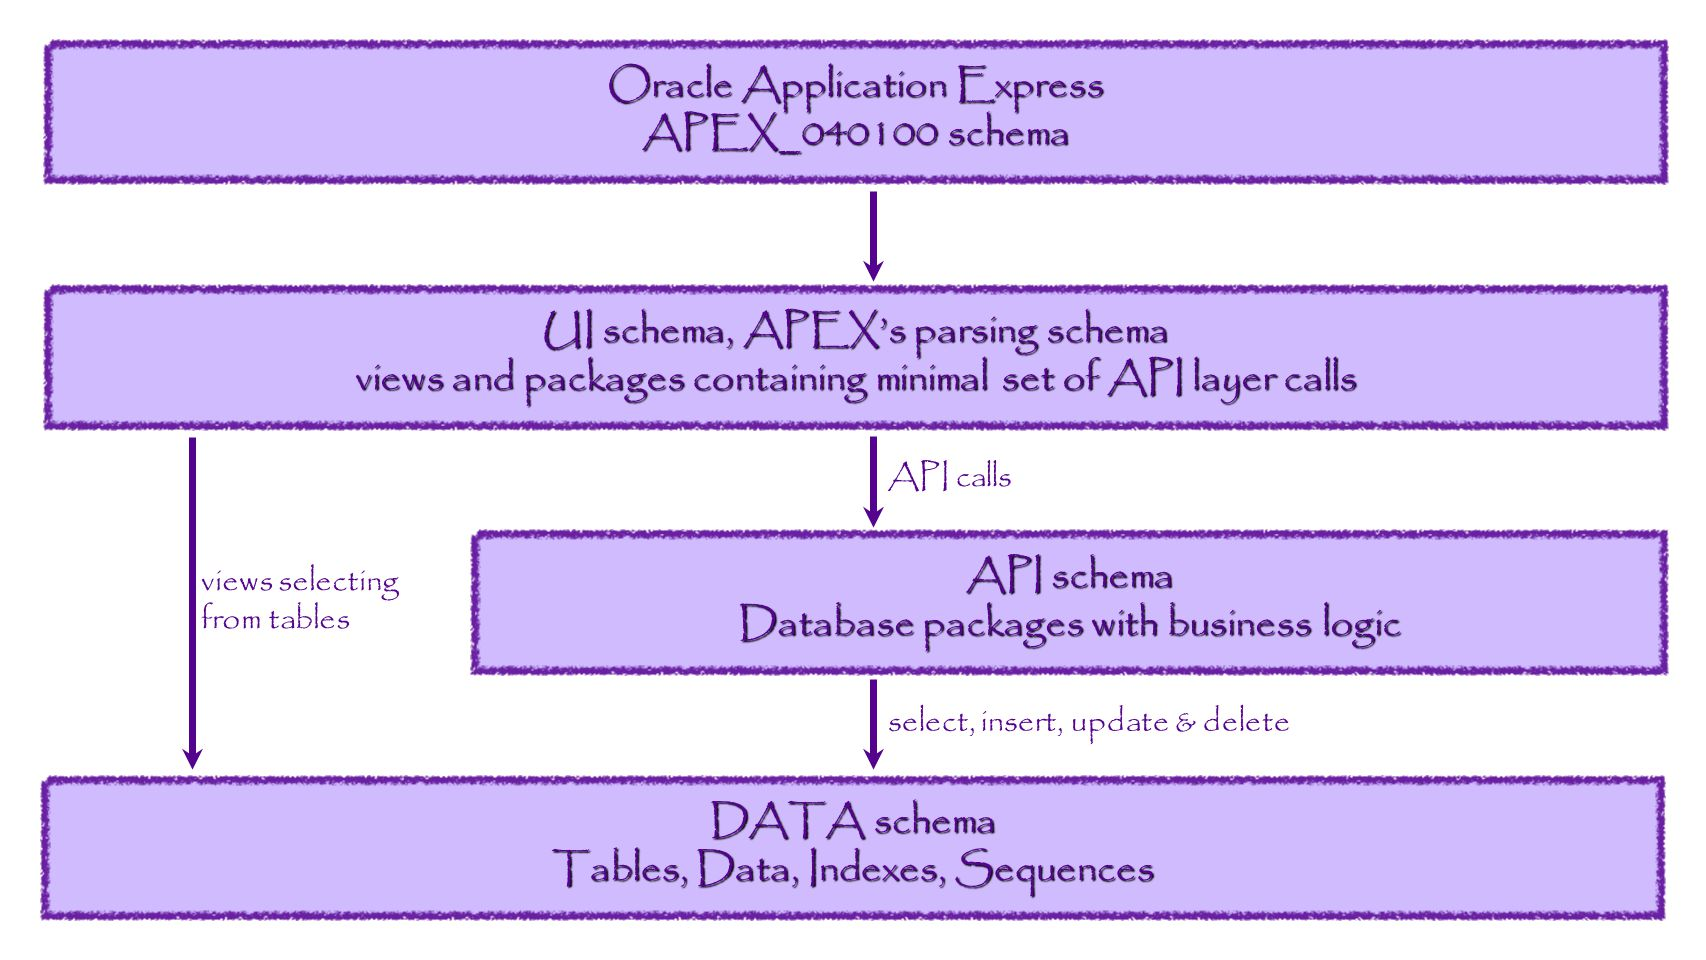 Oracle Application Express APEX_ schema